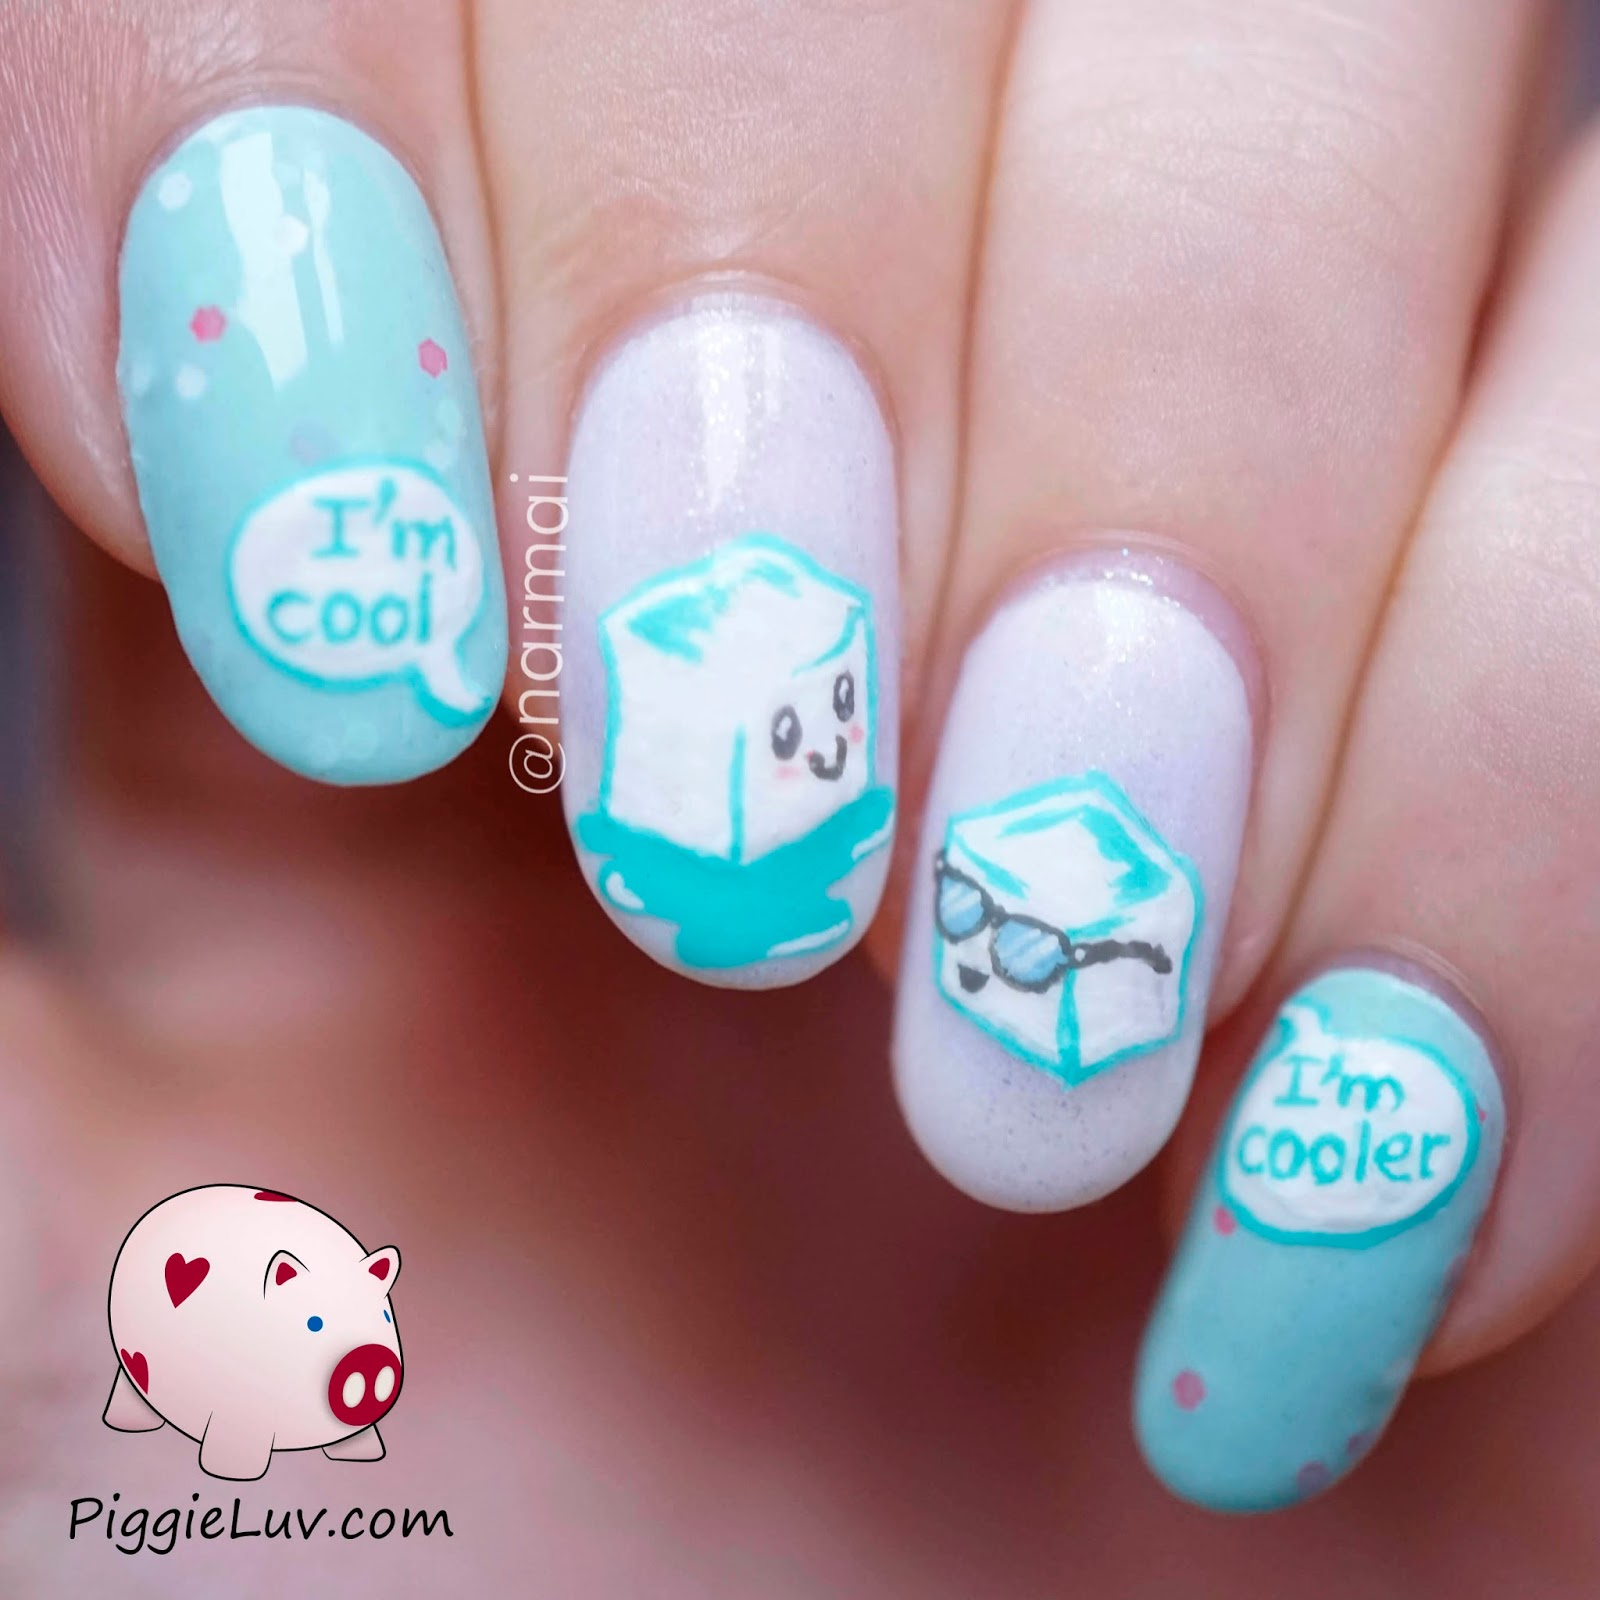 PiggieLuv: Ice, ice, baby! Cool ice cubes nail art